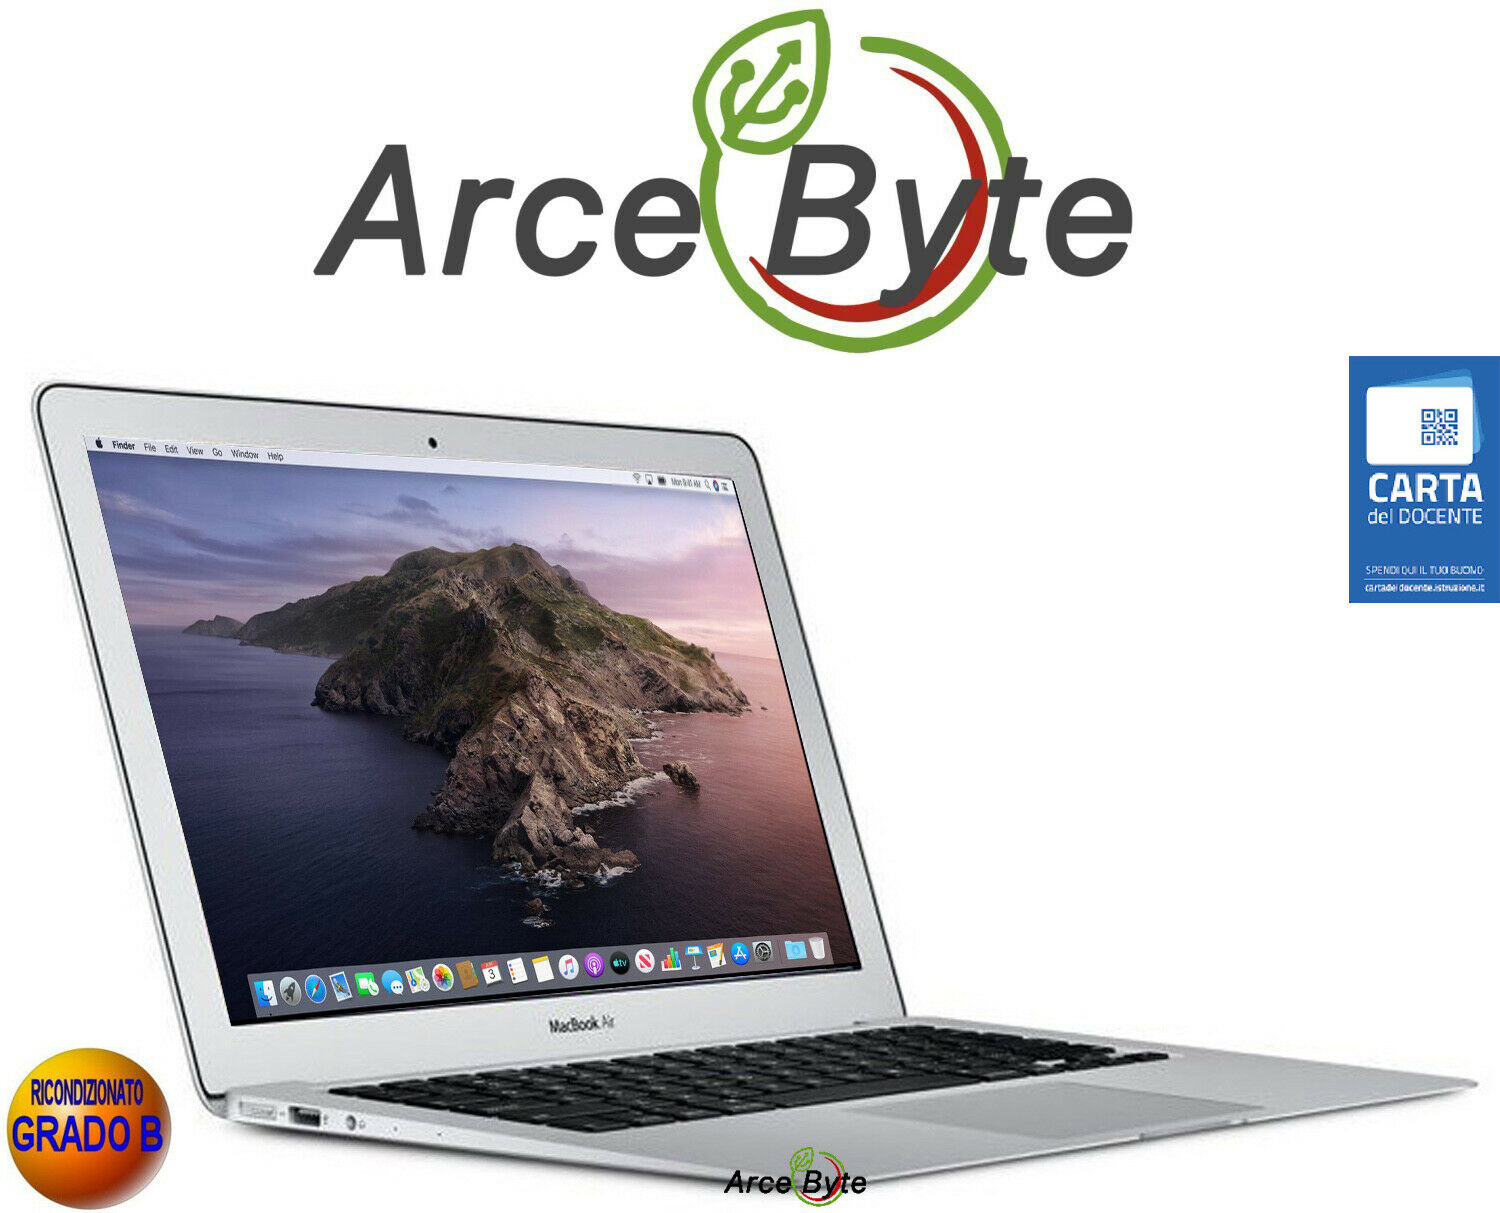 "macbook: APPLE MACBOOK AIR 11"" CORE i5 1,4Ghz FATTURABILE BIG SUR SSD GRADO B 2014"